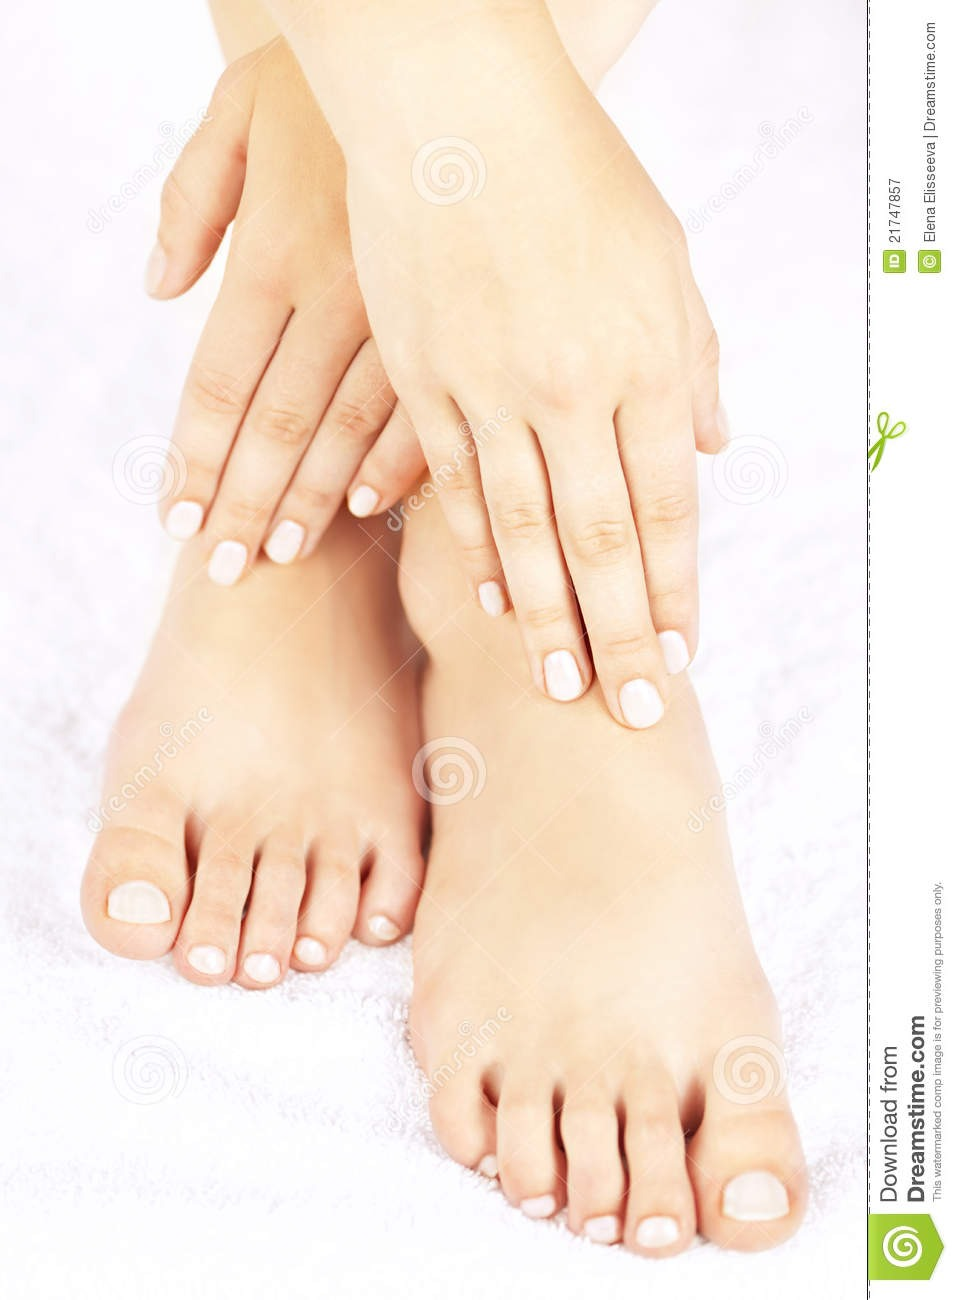 Feet: rub coconut oil or Vaseline on them and cover with socks. Your feet will be so soft!